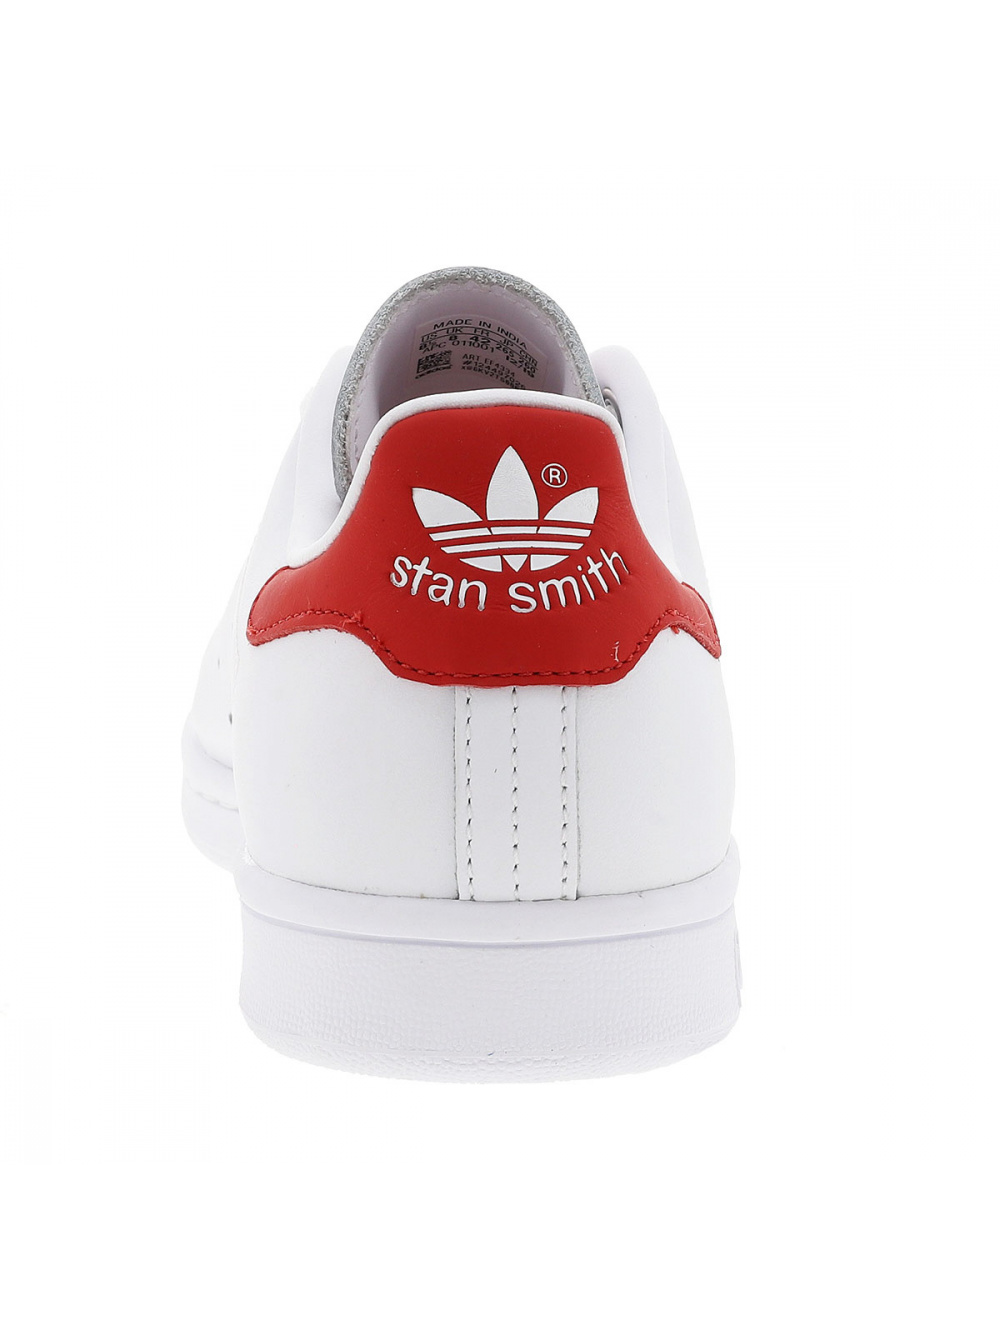 Baskets basses homme cuir STAN SMITH blanc/rouge Adidas,adidas ...